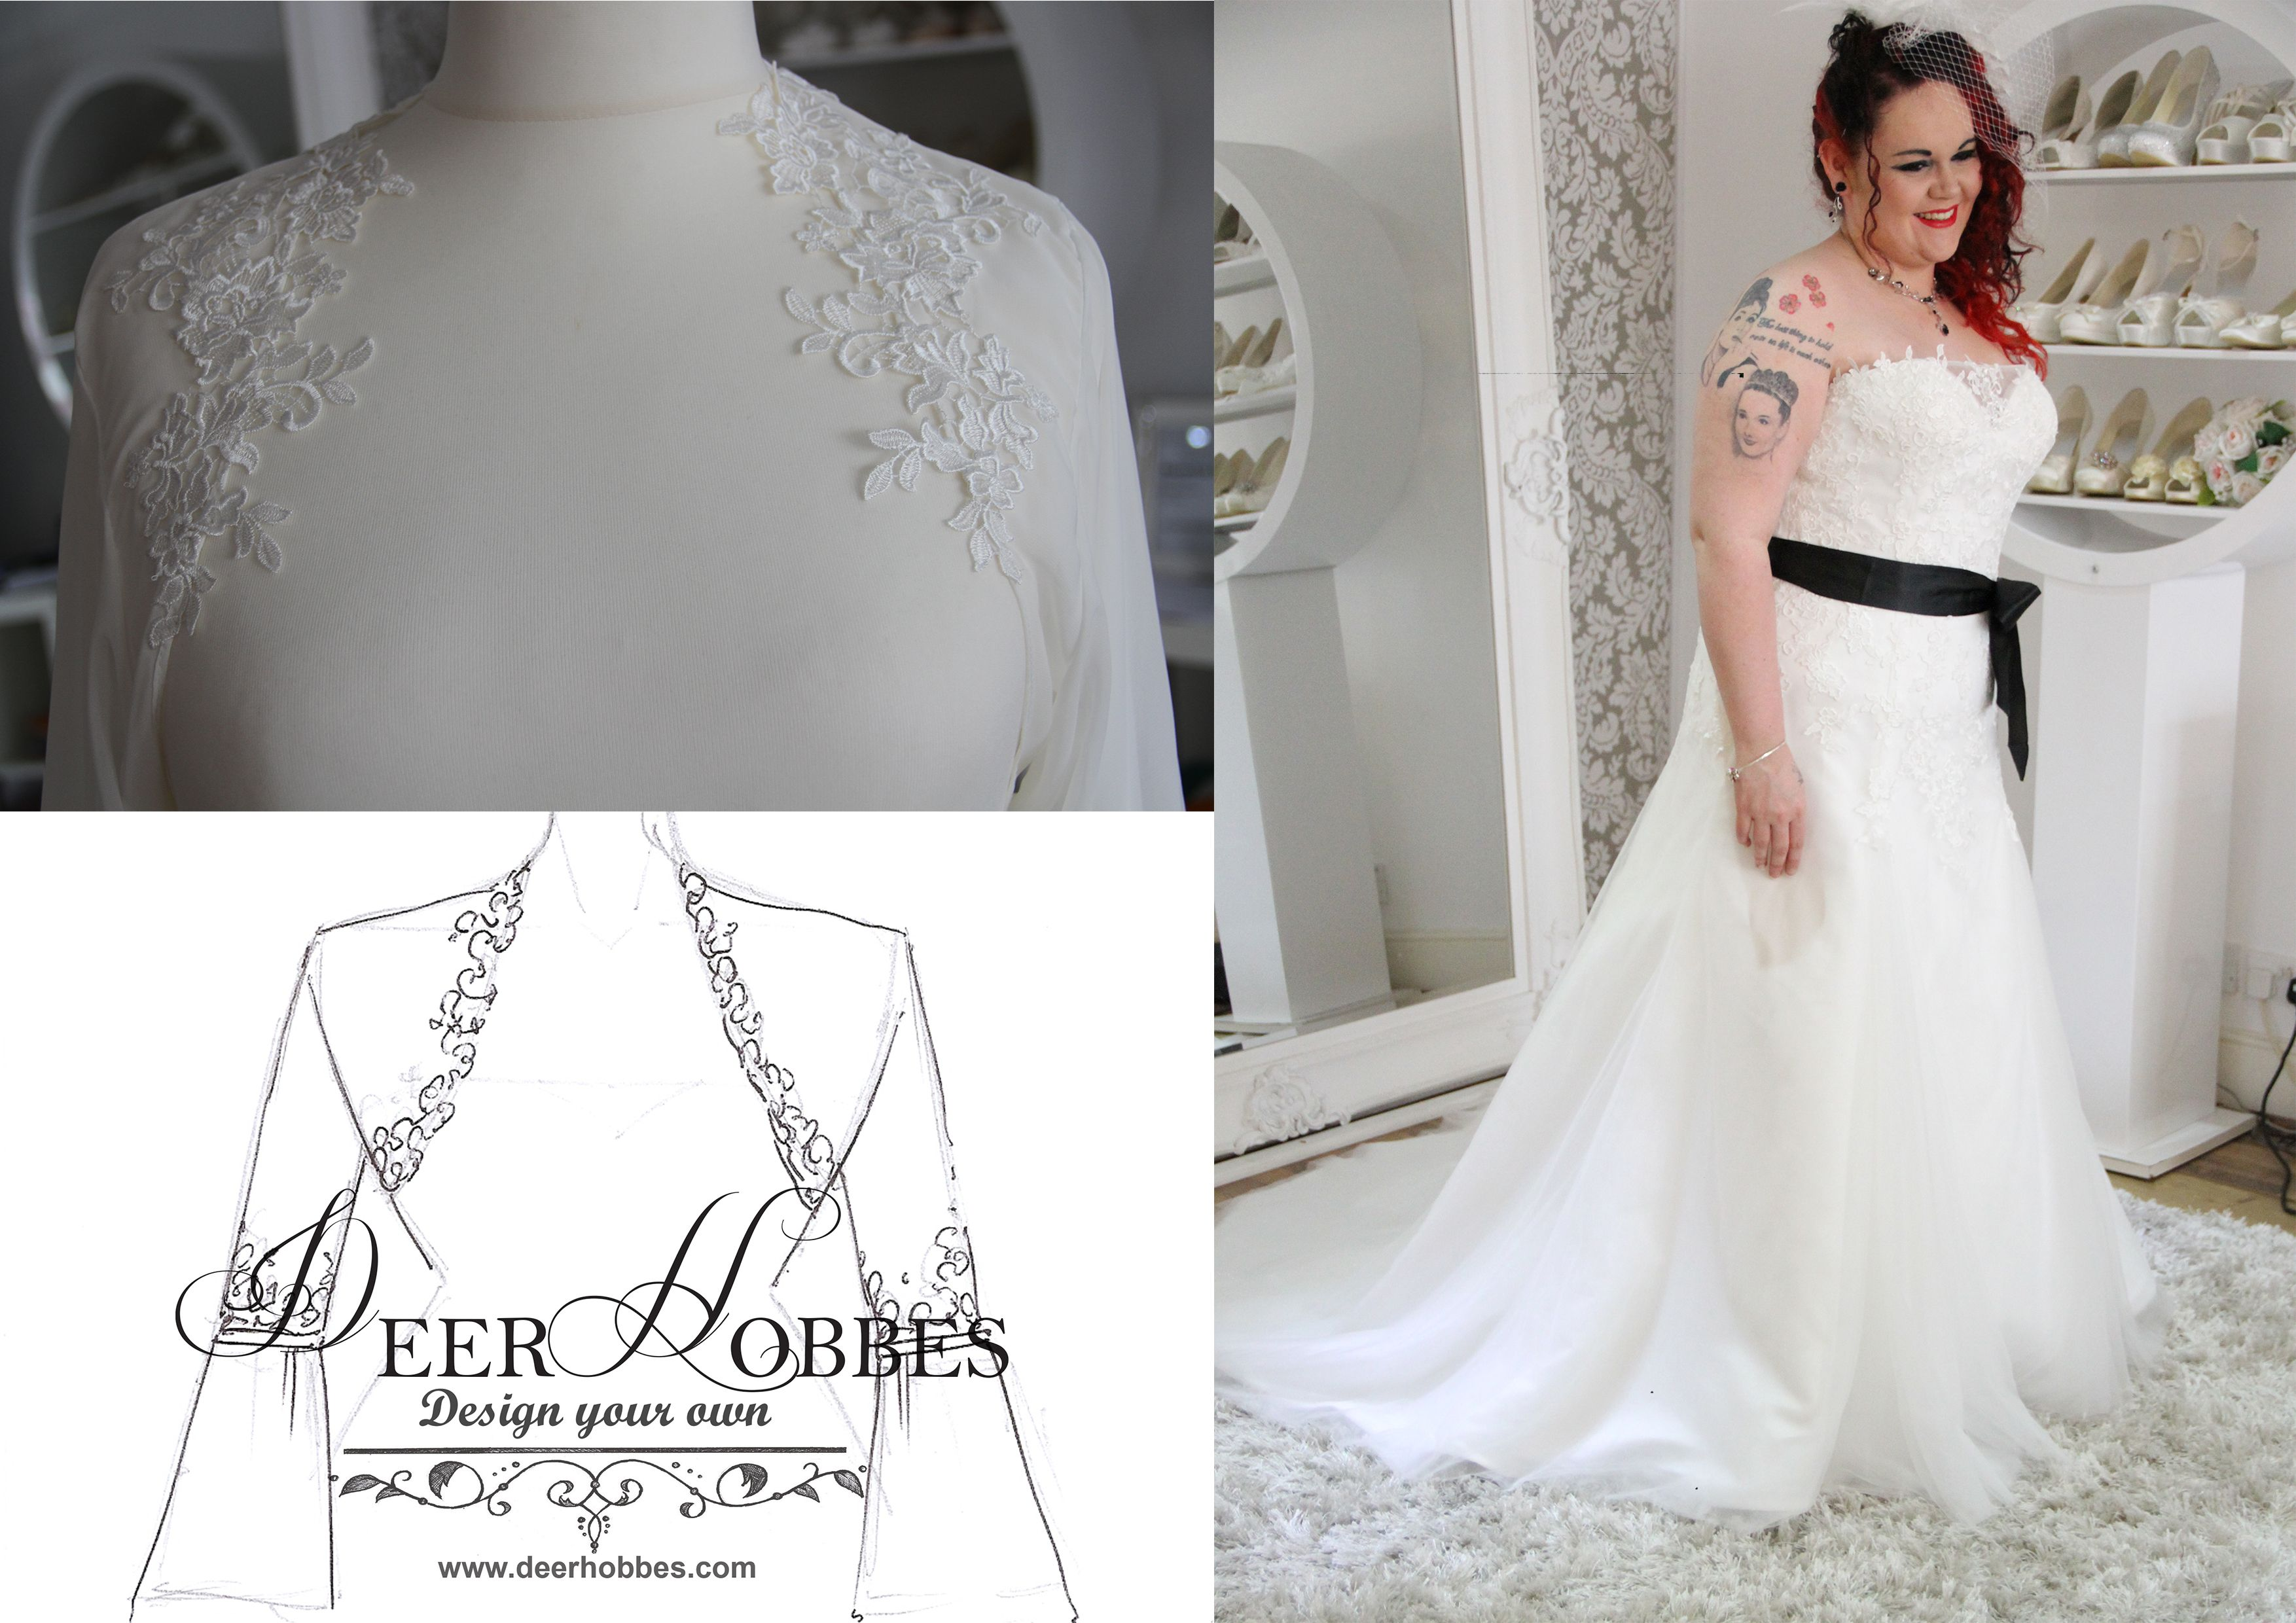 Design your own Wedding Dress on Budget | For more Information about ...